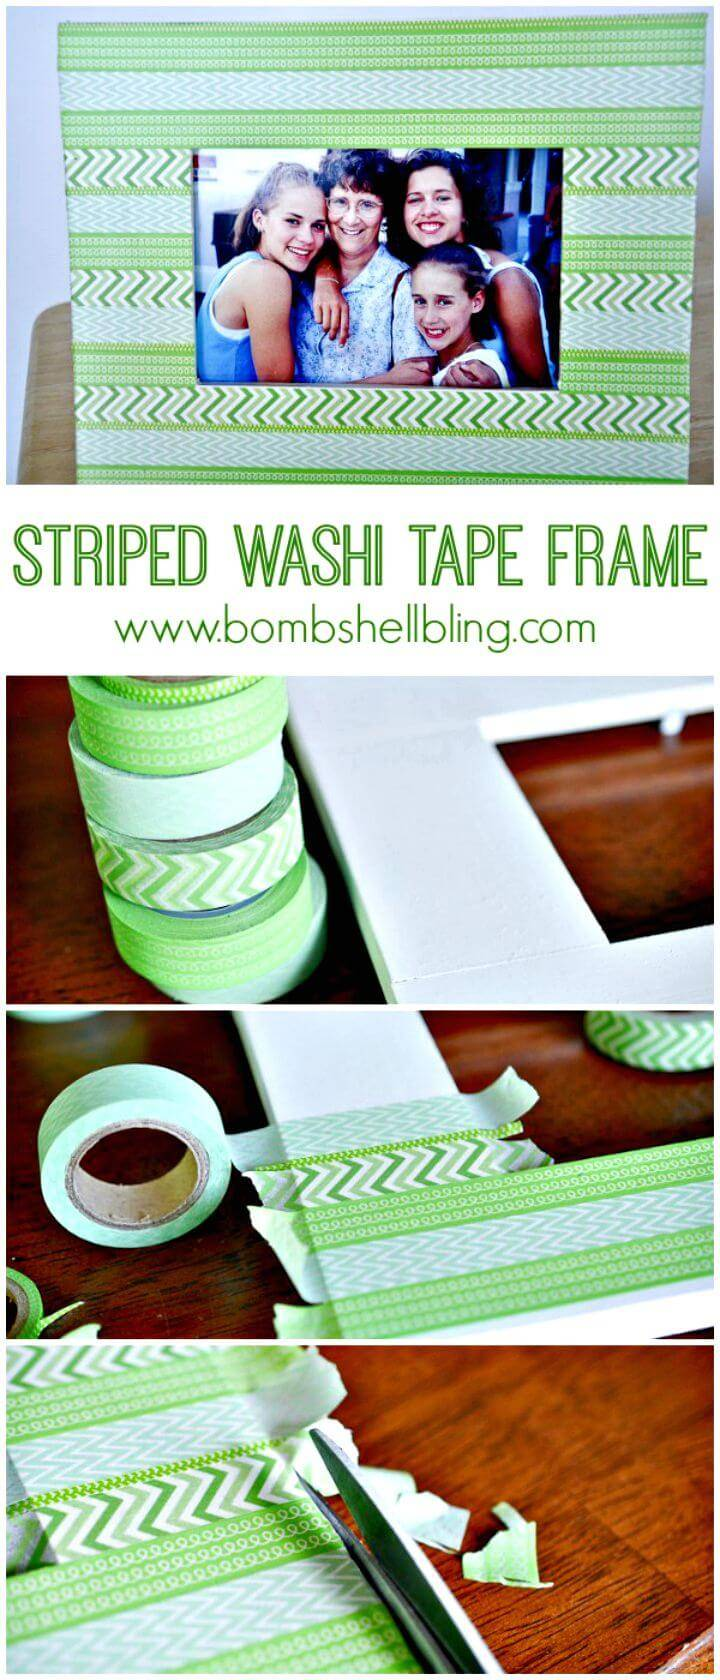 How To Make Striped Washi Tape Frame Tutorial